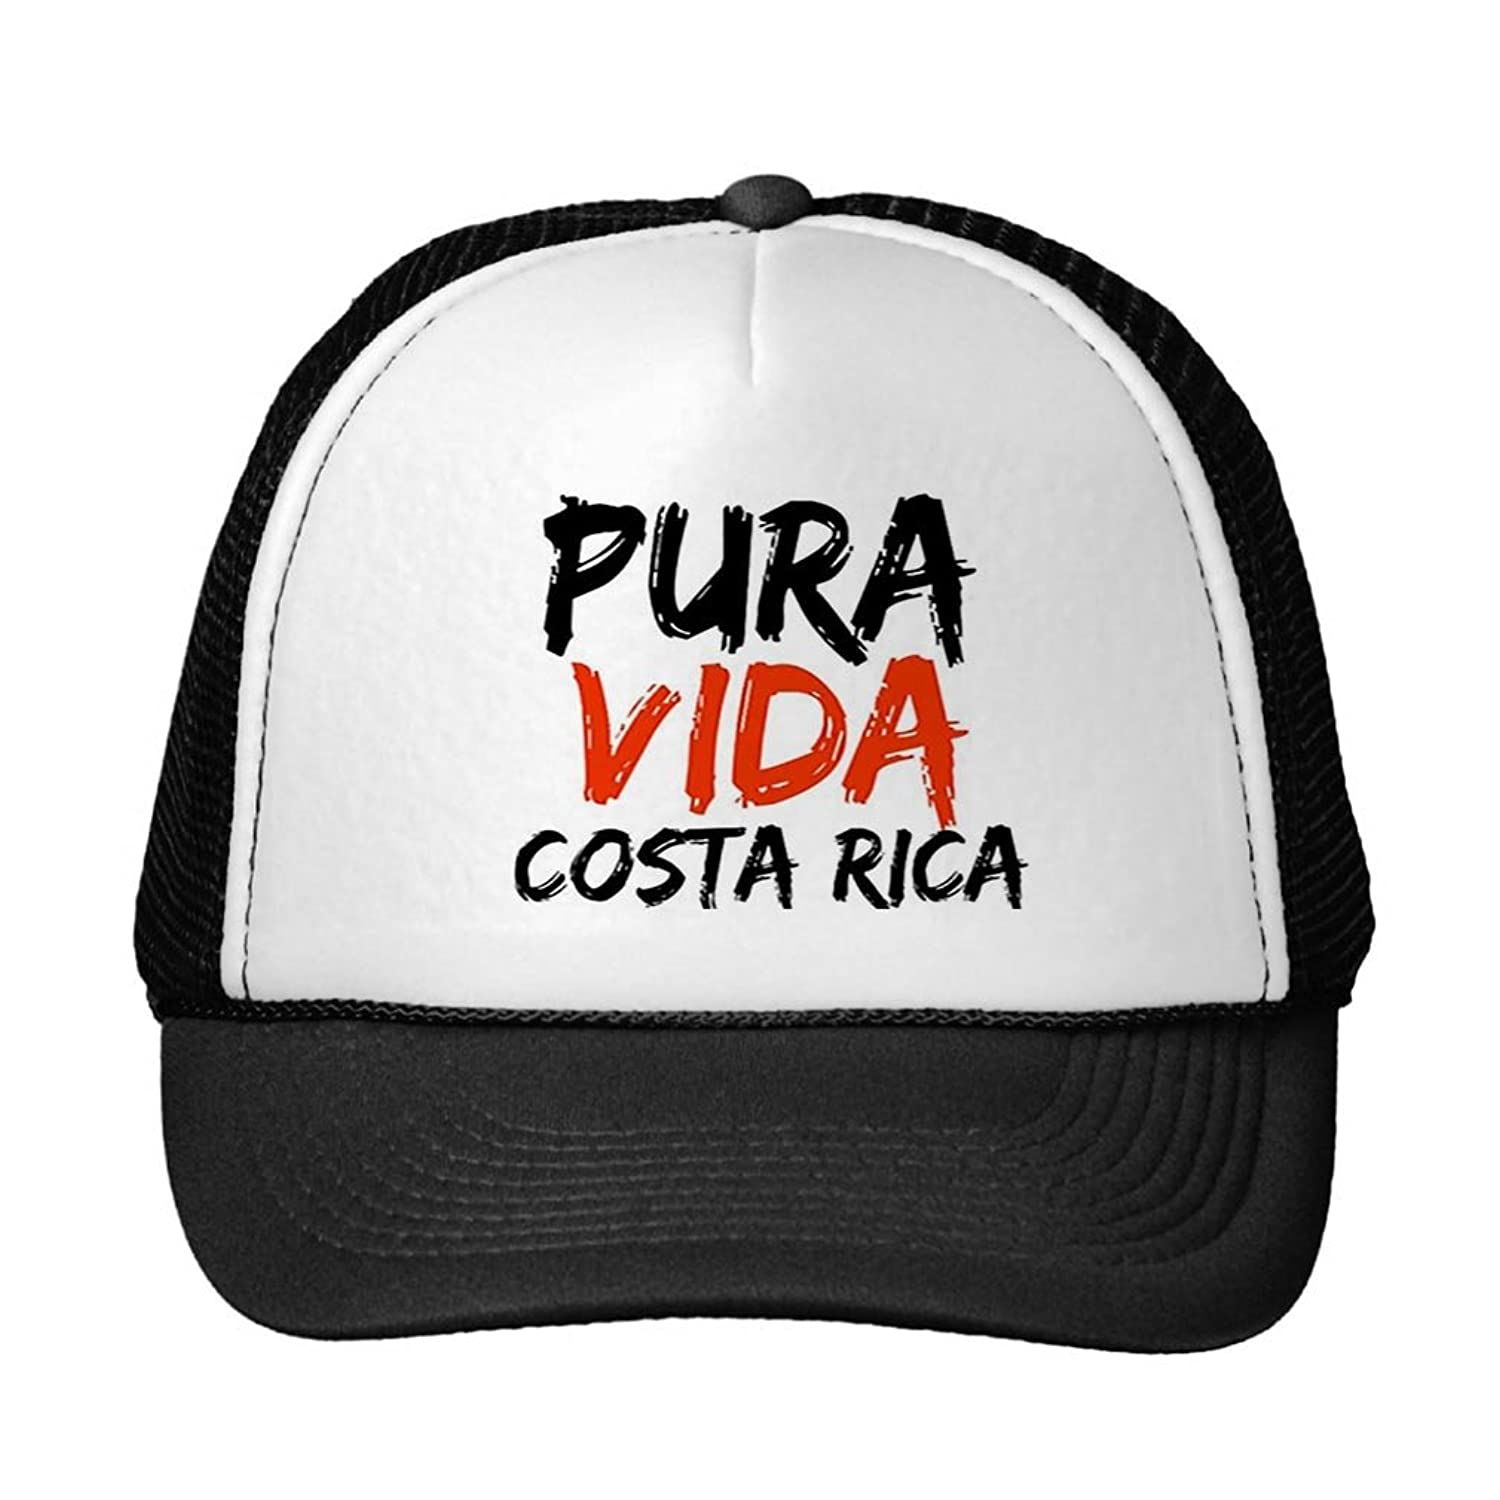 3d8eedc4c authentic costa rica pura vida hat 99965 948bb